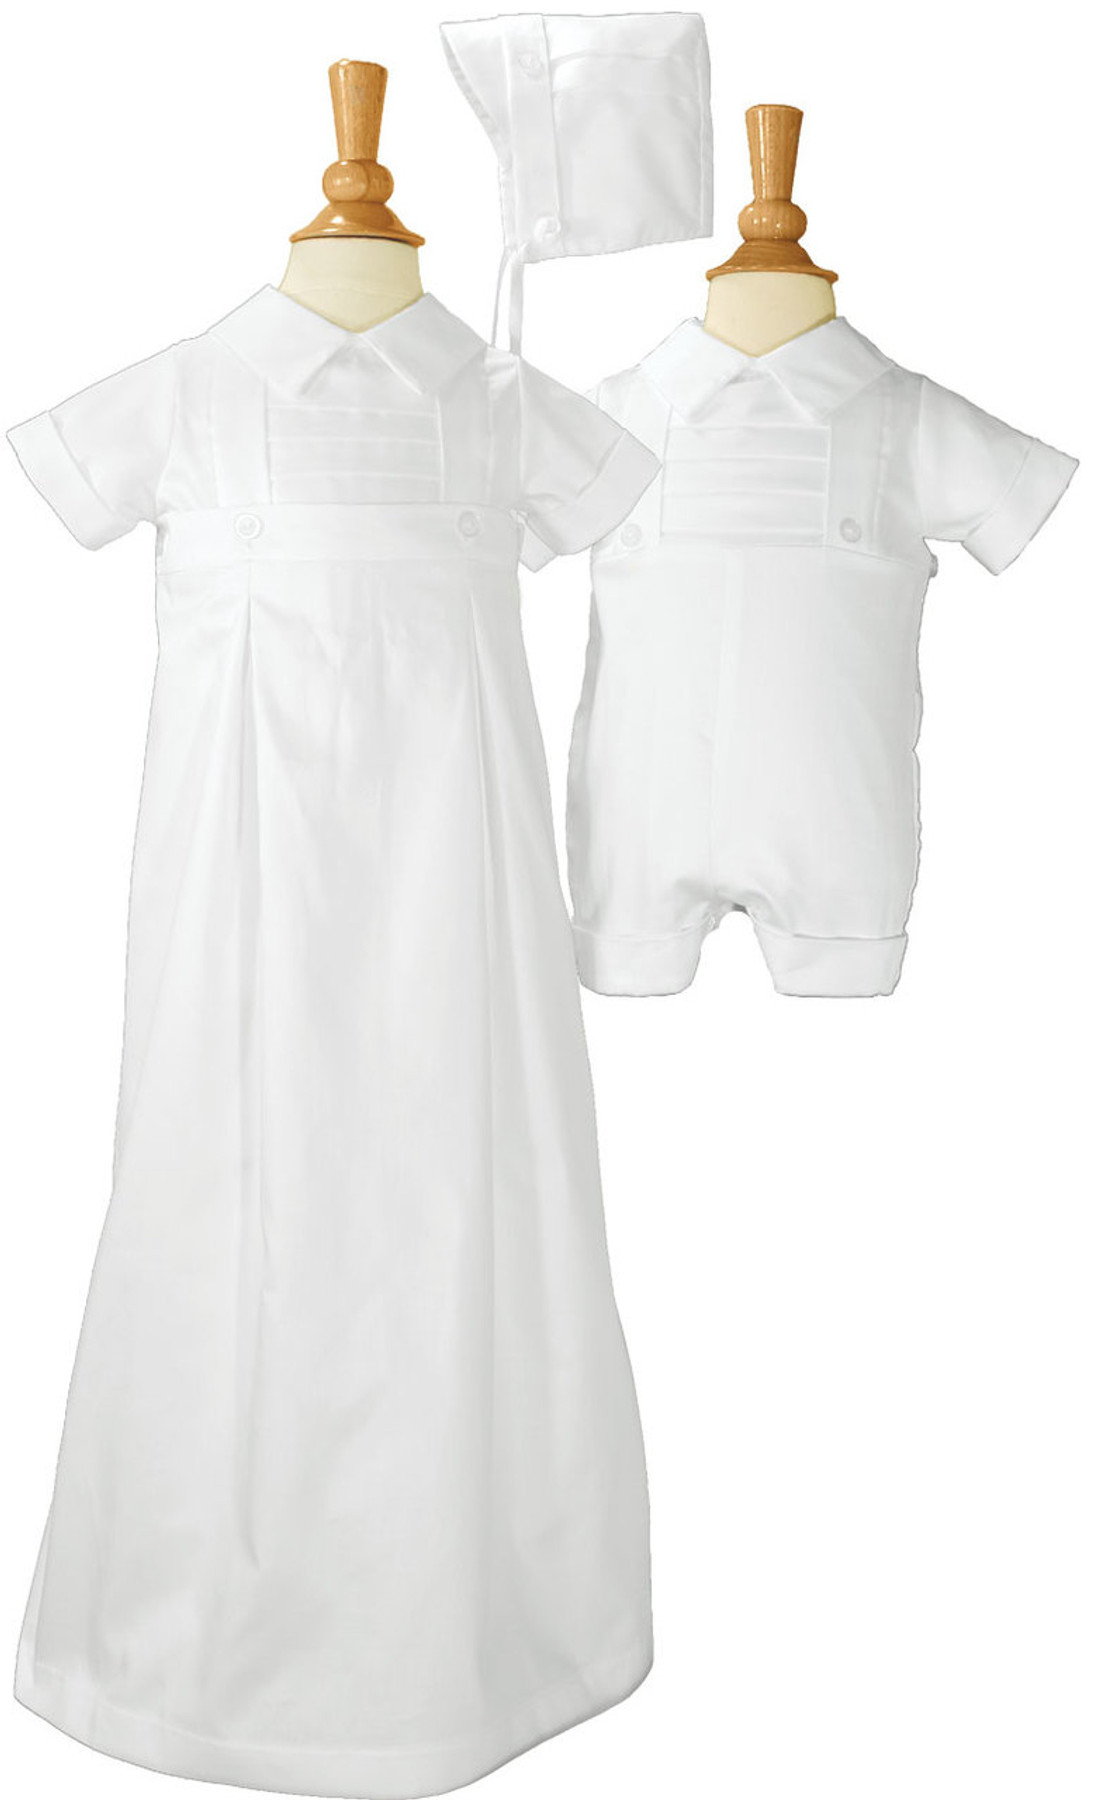 58708ce42 Boys Cotton Christening Convertible Baptism Set with Hat